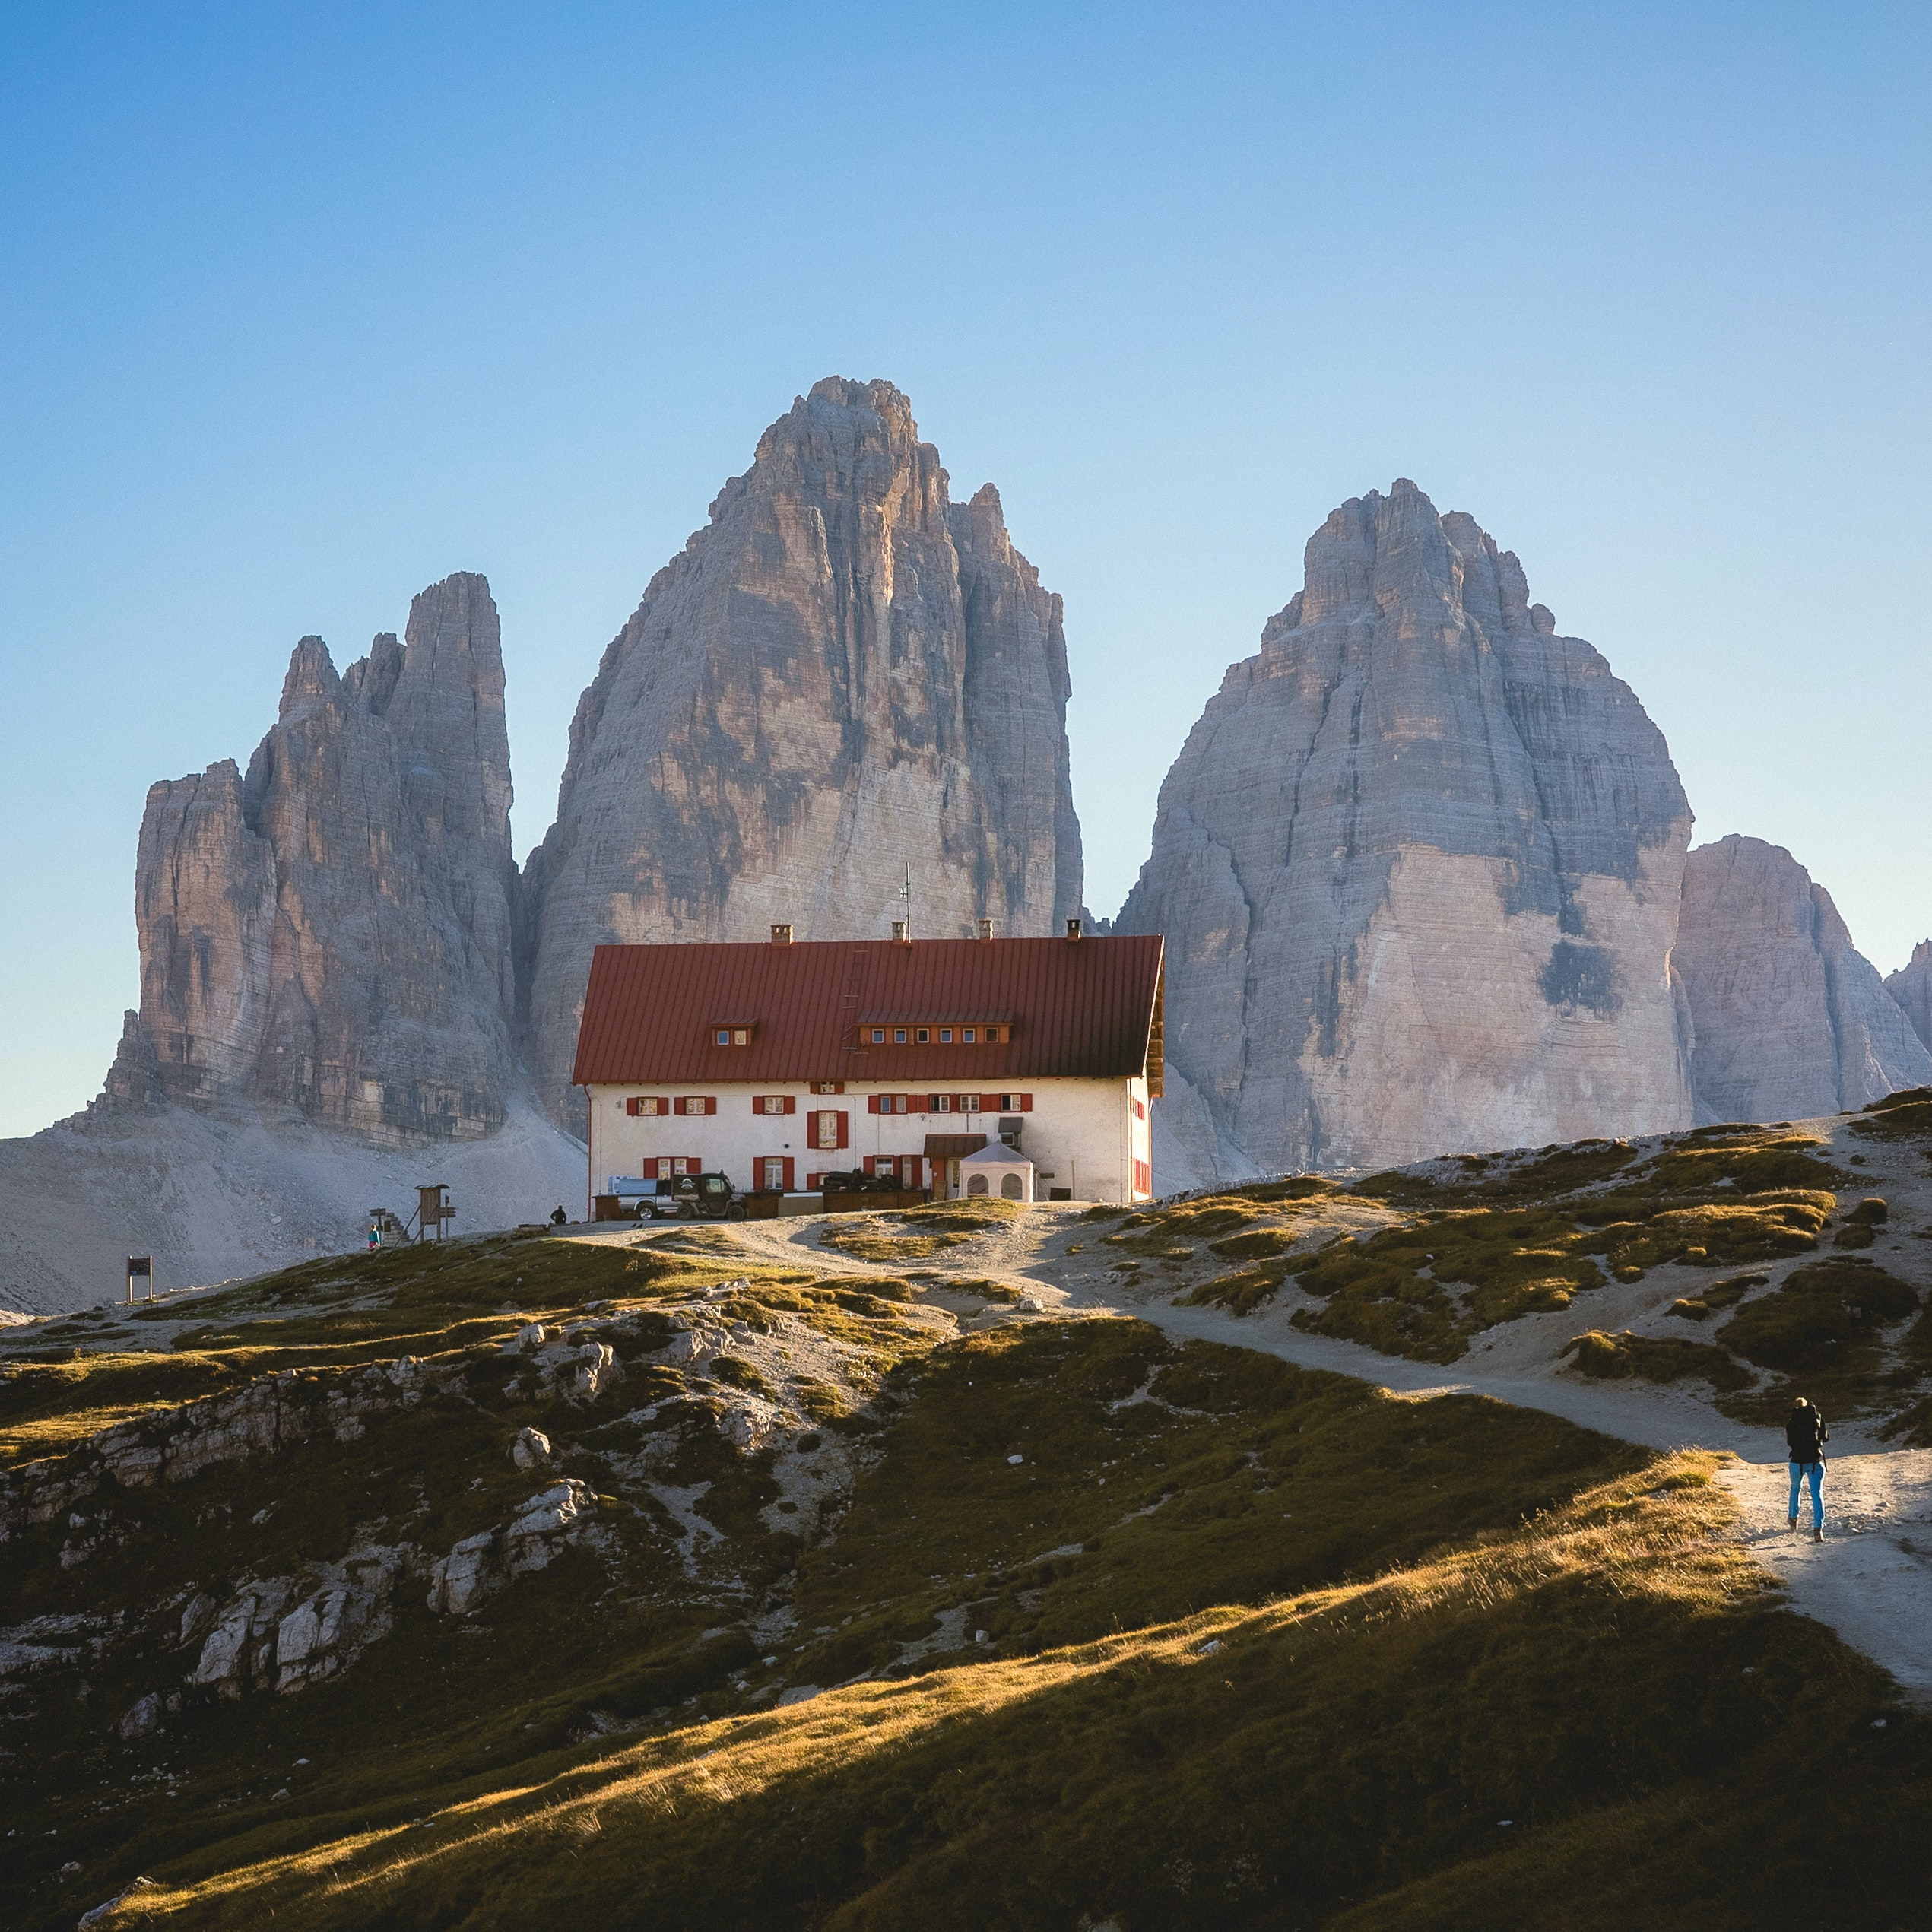 three imposing mountain spires behind a inn on a hill in the Dolomites